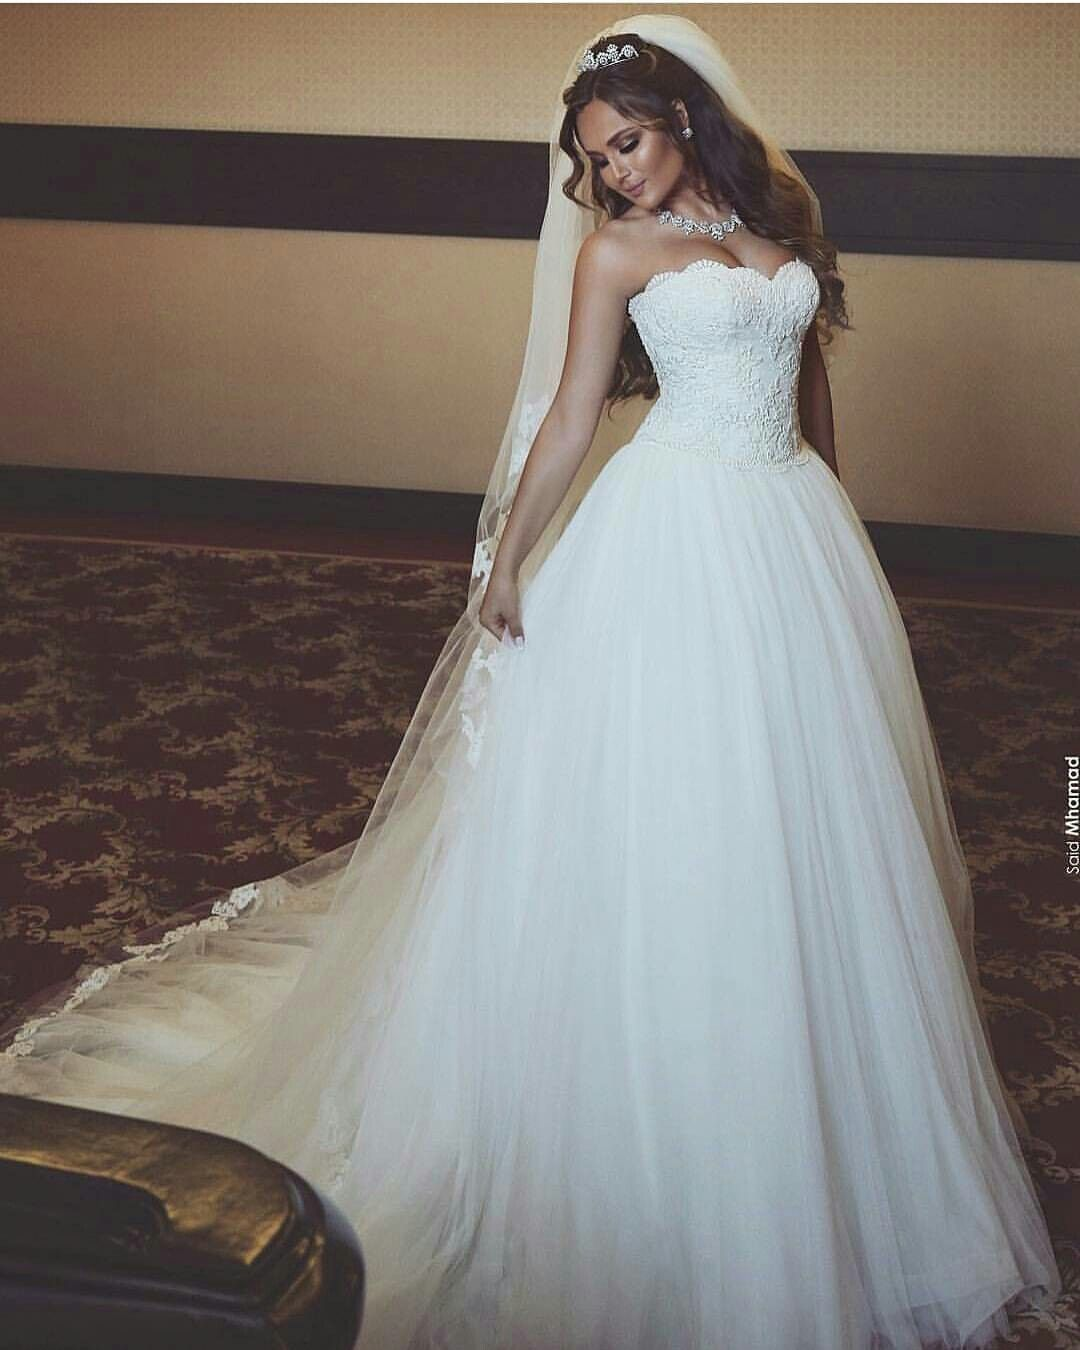 Pin by Rebecca Taylor on Beautiful Gowns/Dresses | Pinterest | Wedding